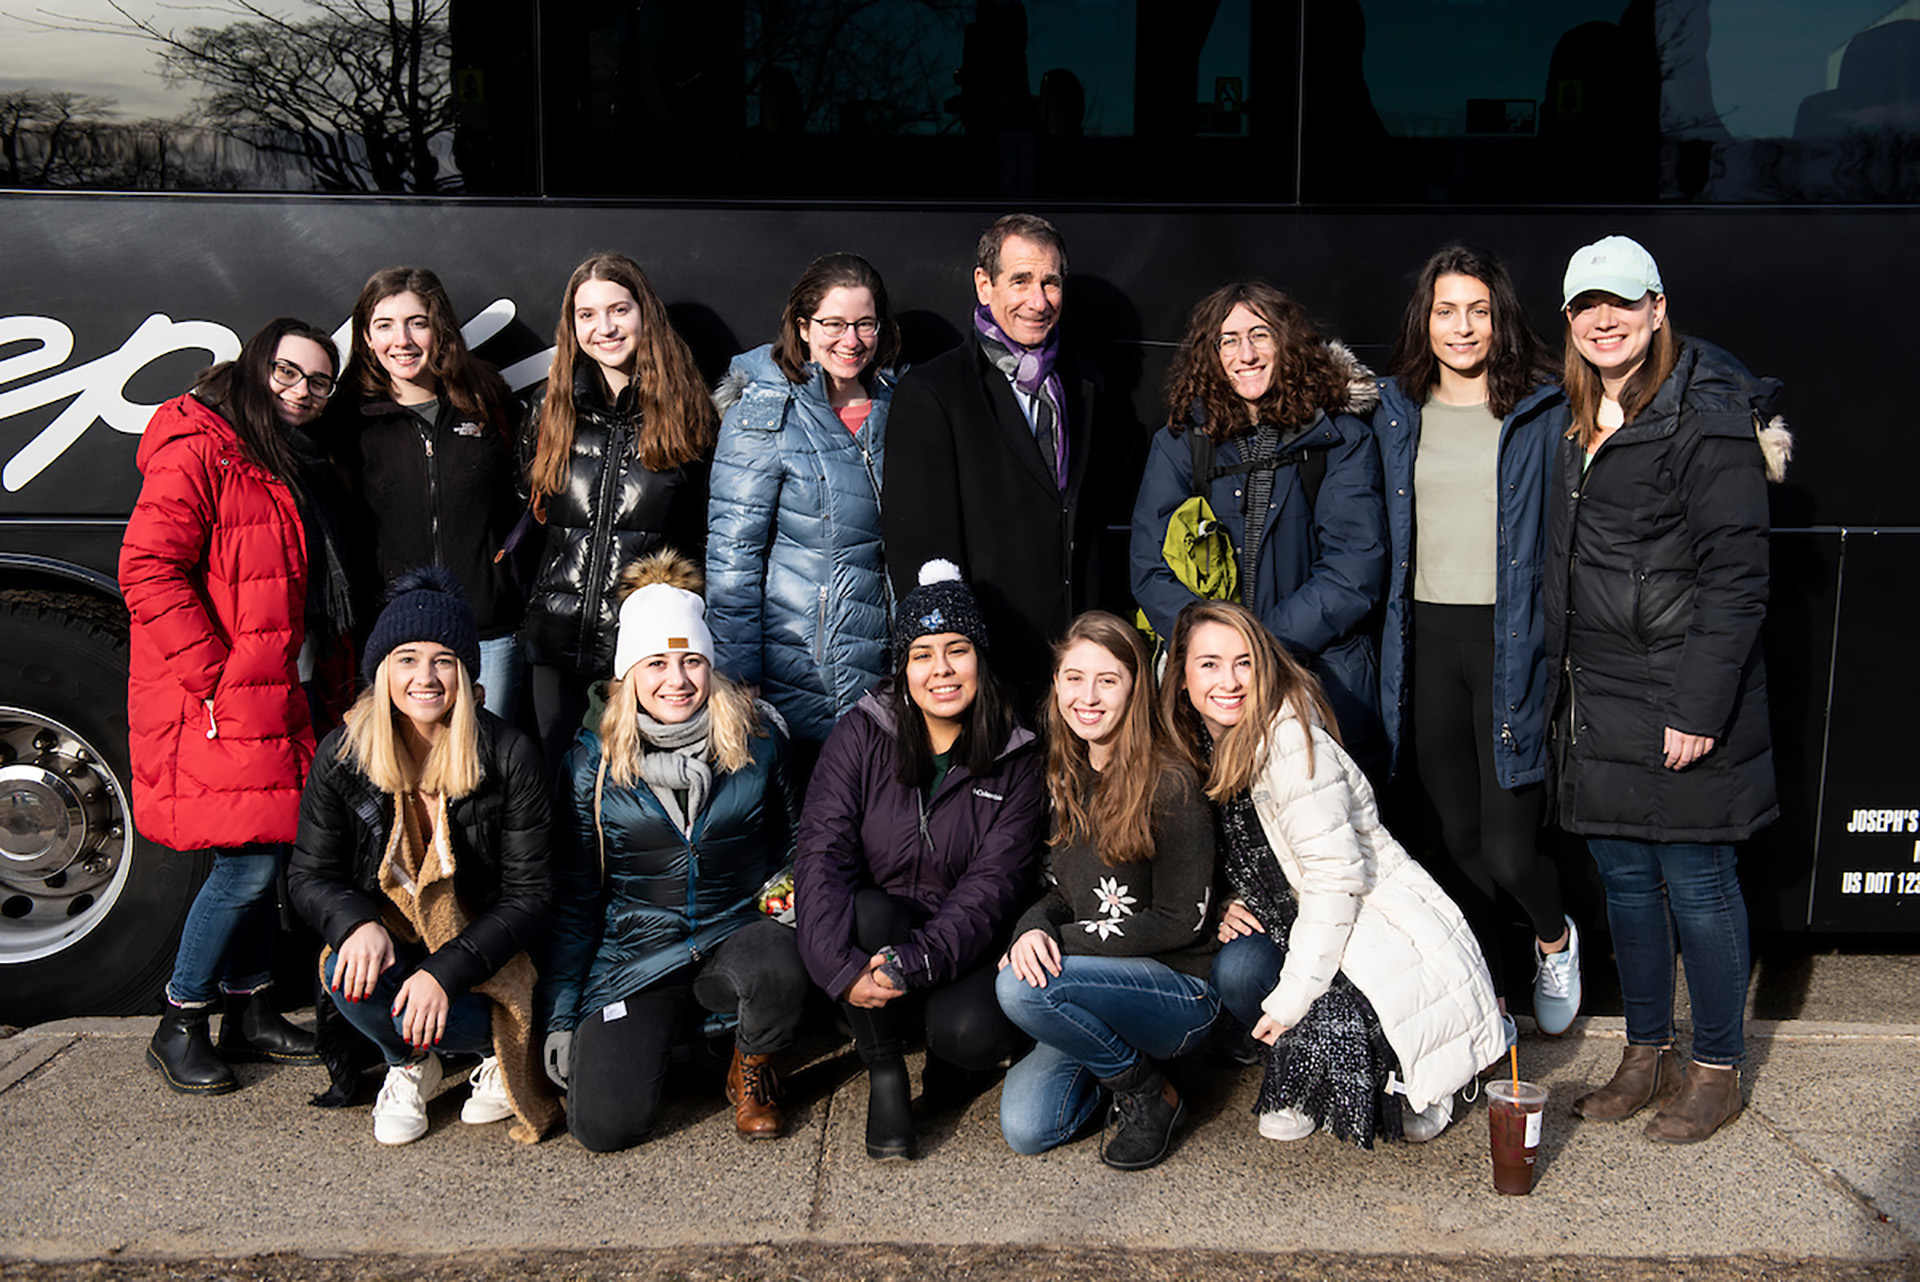 A group photo of 13 students and Tufts administrators